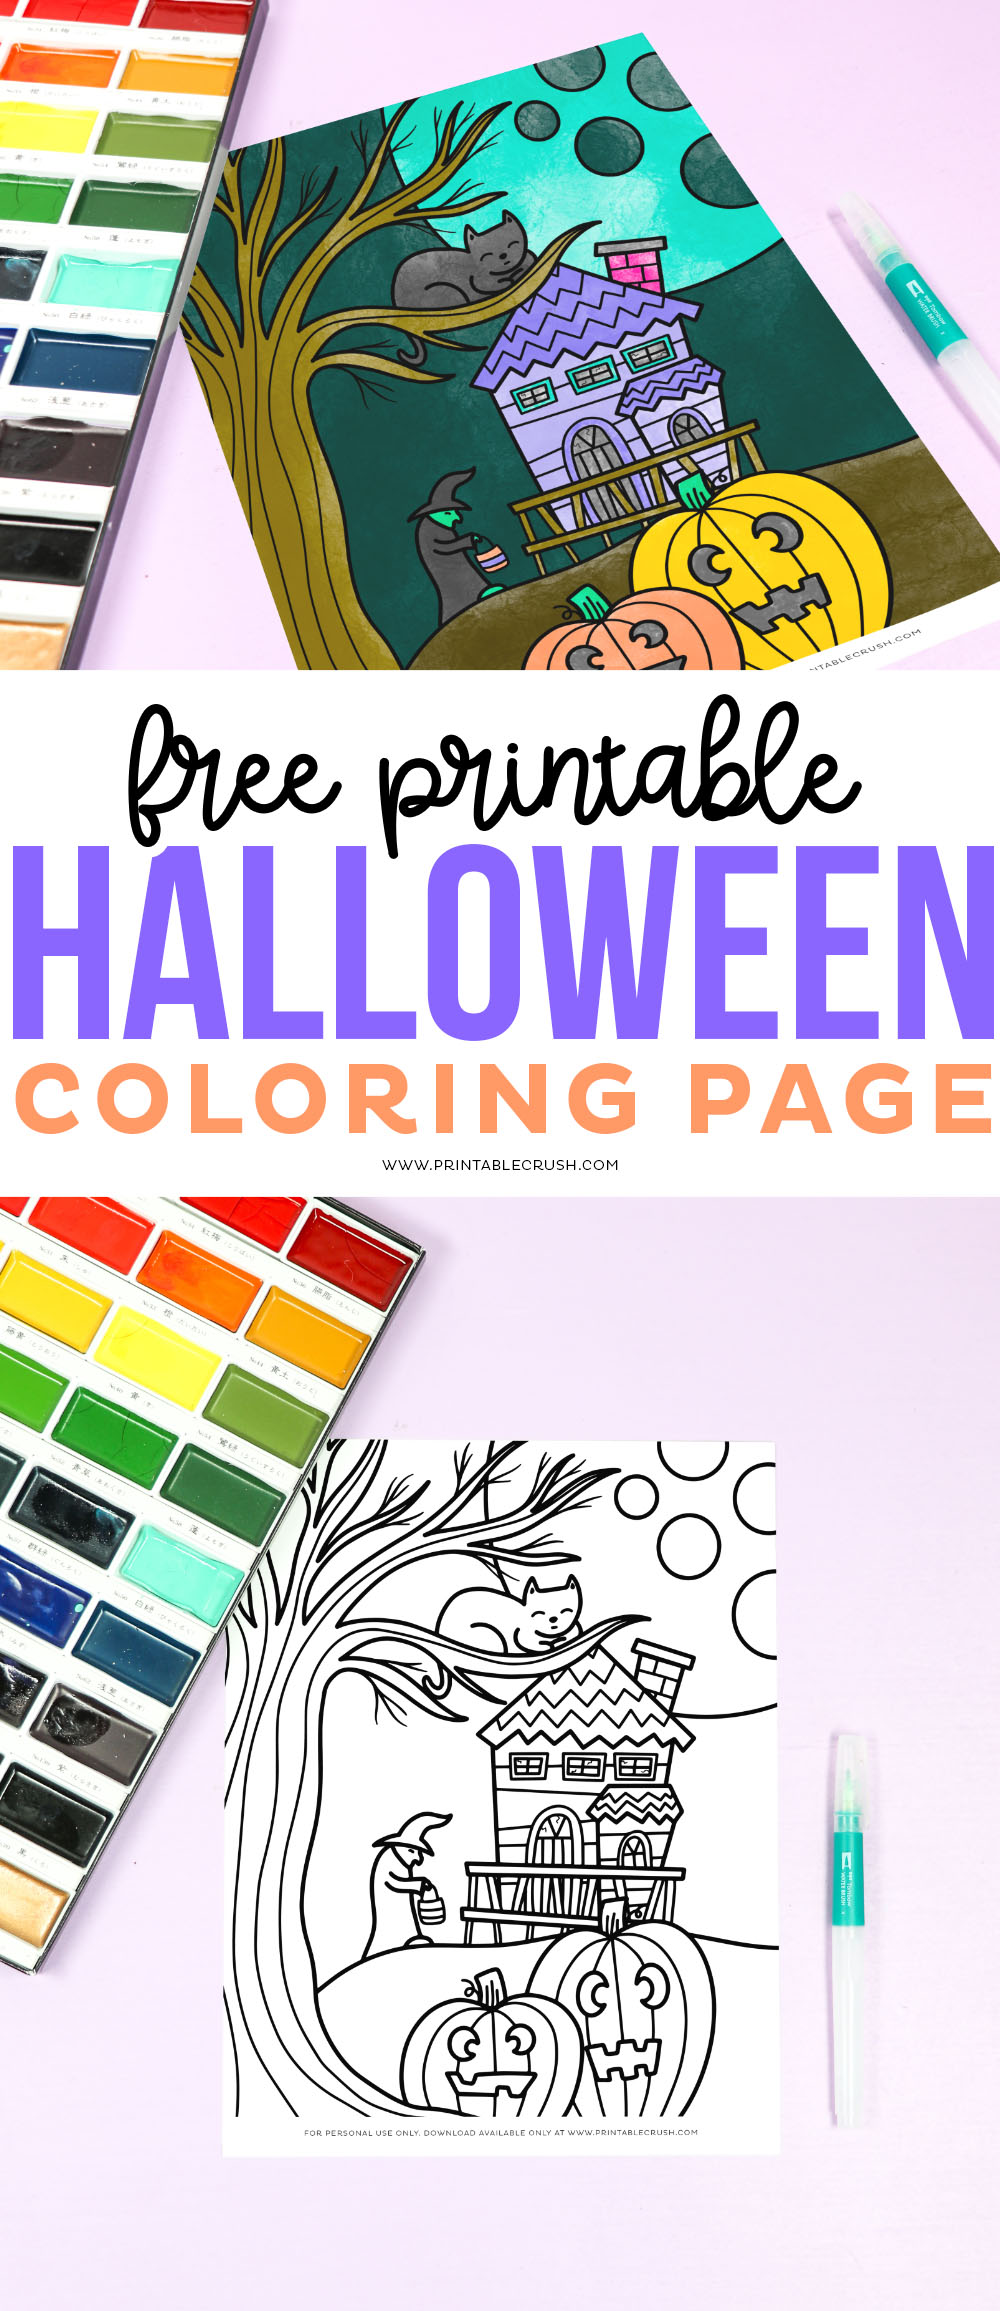 Free Printable Halloween Coloring Page - Printable Crush #halloween #coloringpage #freeprintable #halloweenprintable #halloweenactivity #kidactivities via @printablecrush